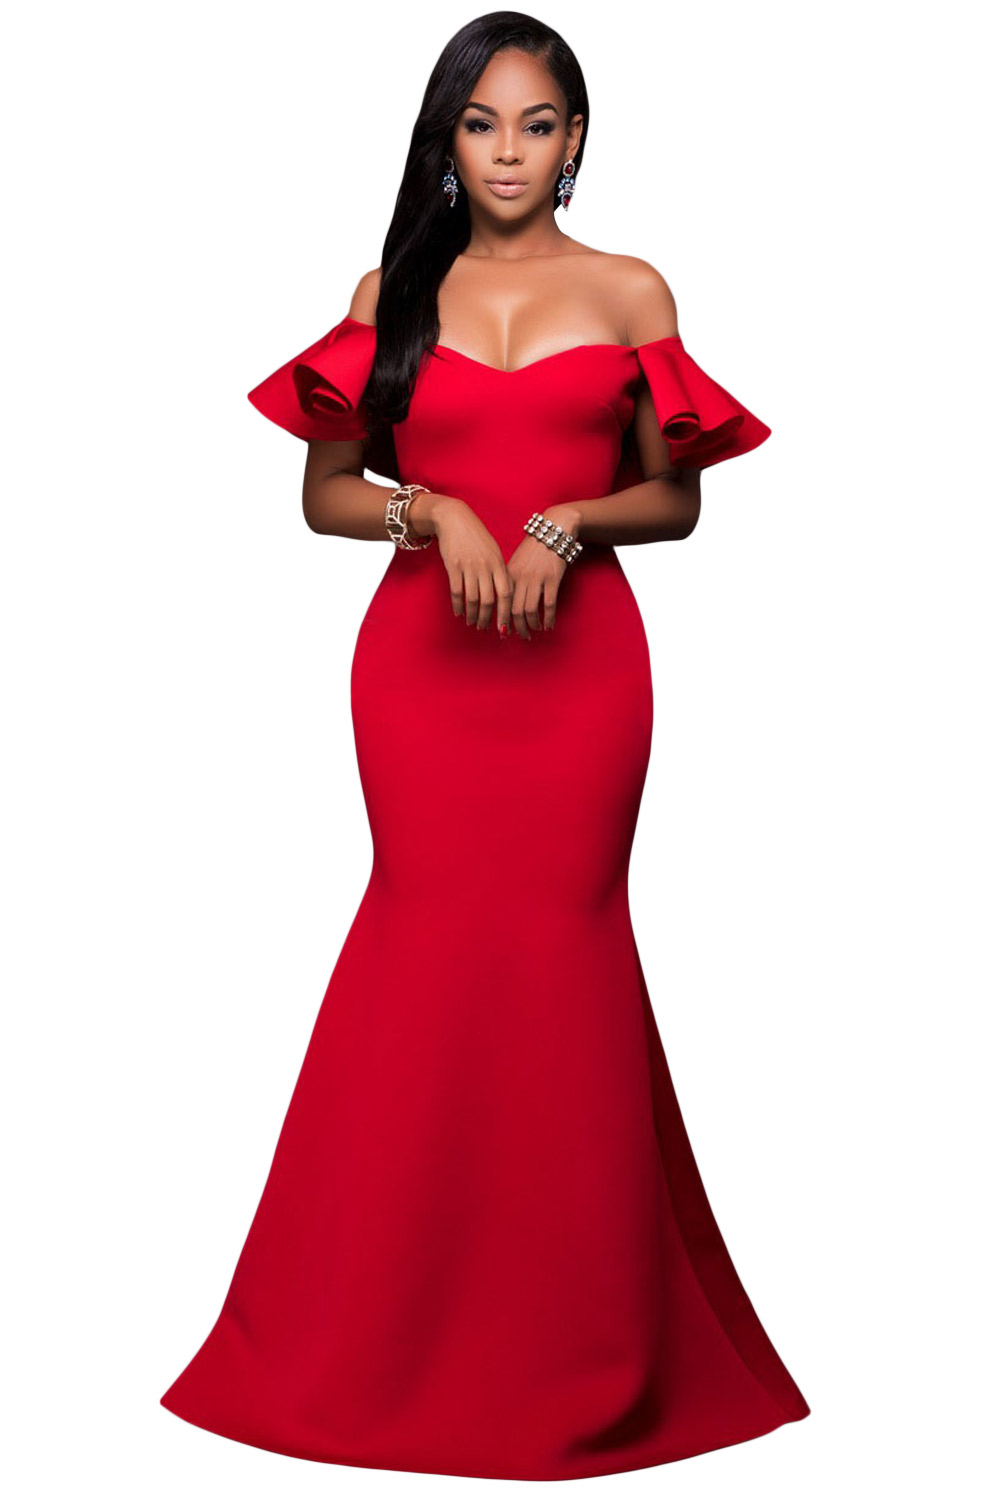 Gorgeous Ruffle Accent Hot Red Party Gown